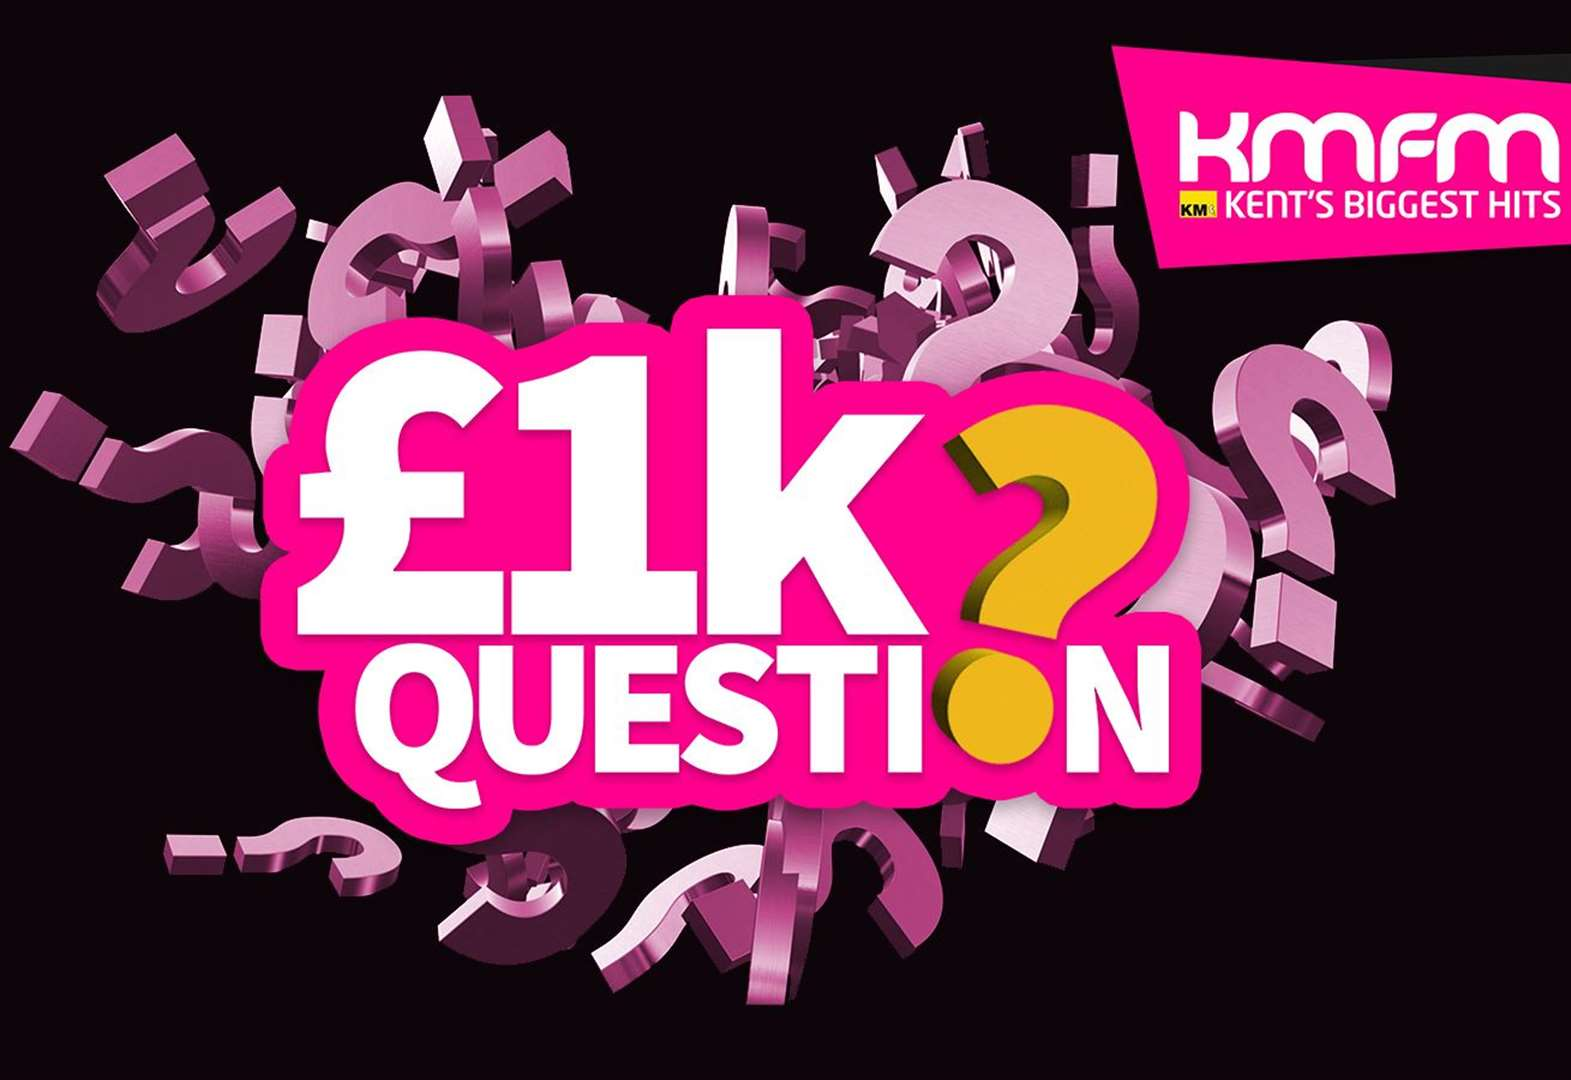 How to bag £1k with kmfm